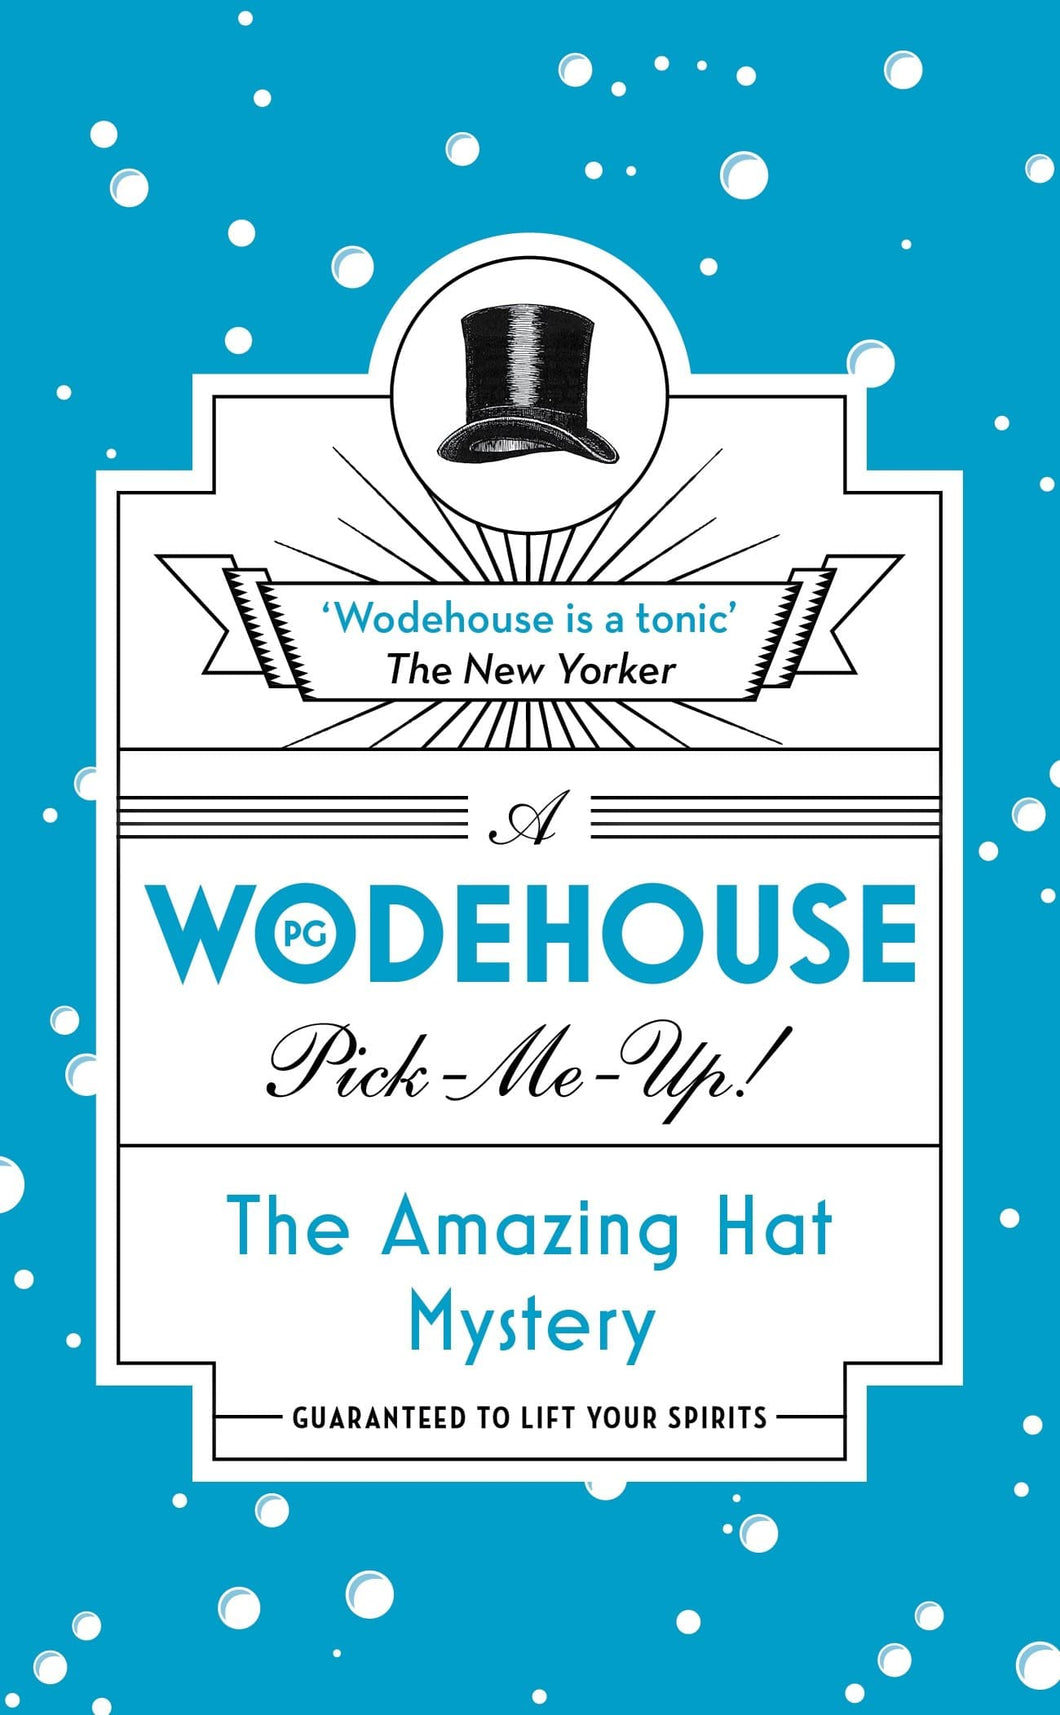 A Wodehouse Pick-Me-Up! -The Amazing Hat Mystery